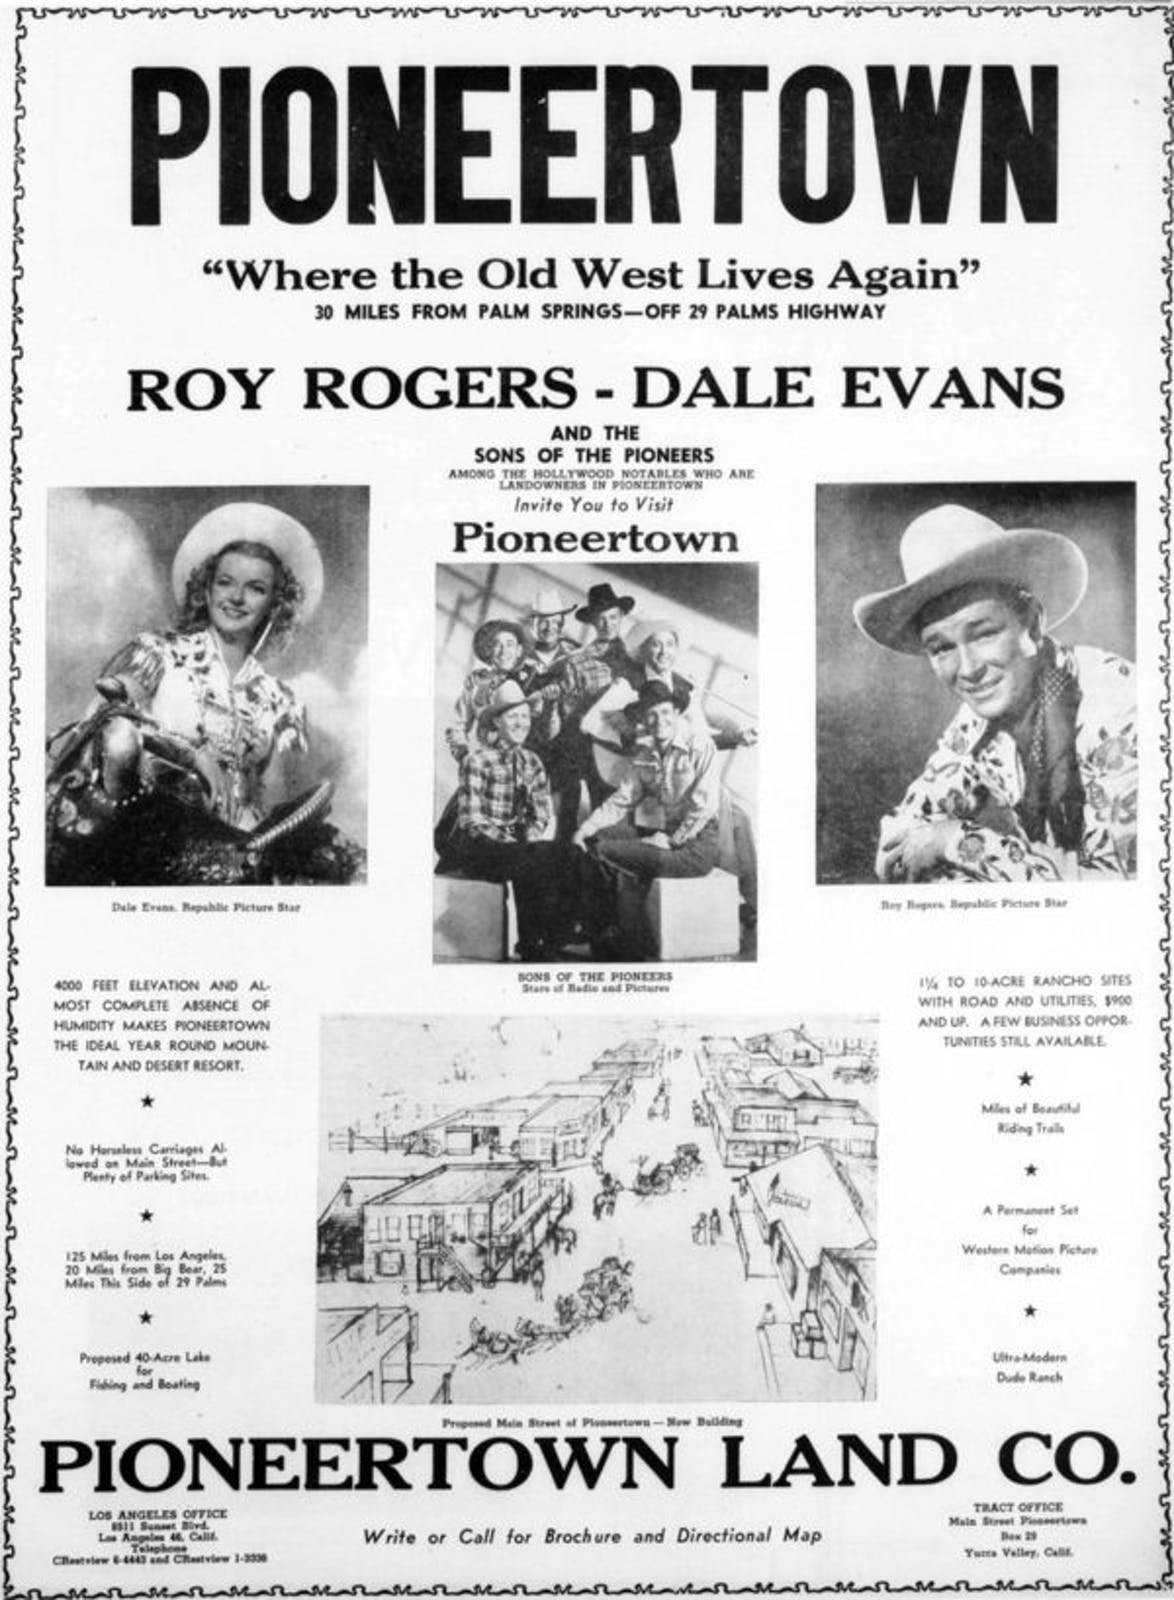 March 25, 1947 full page ad